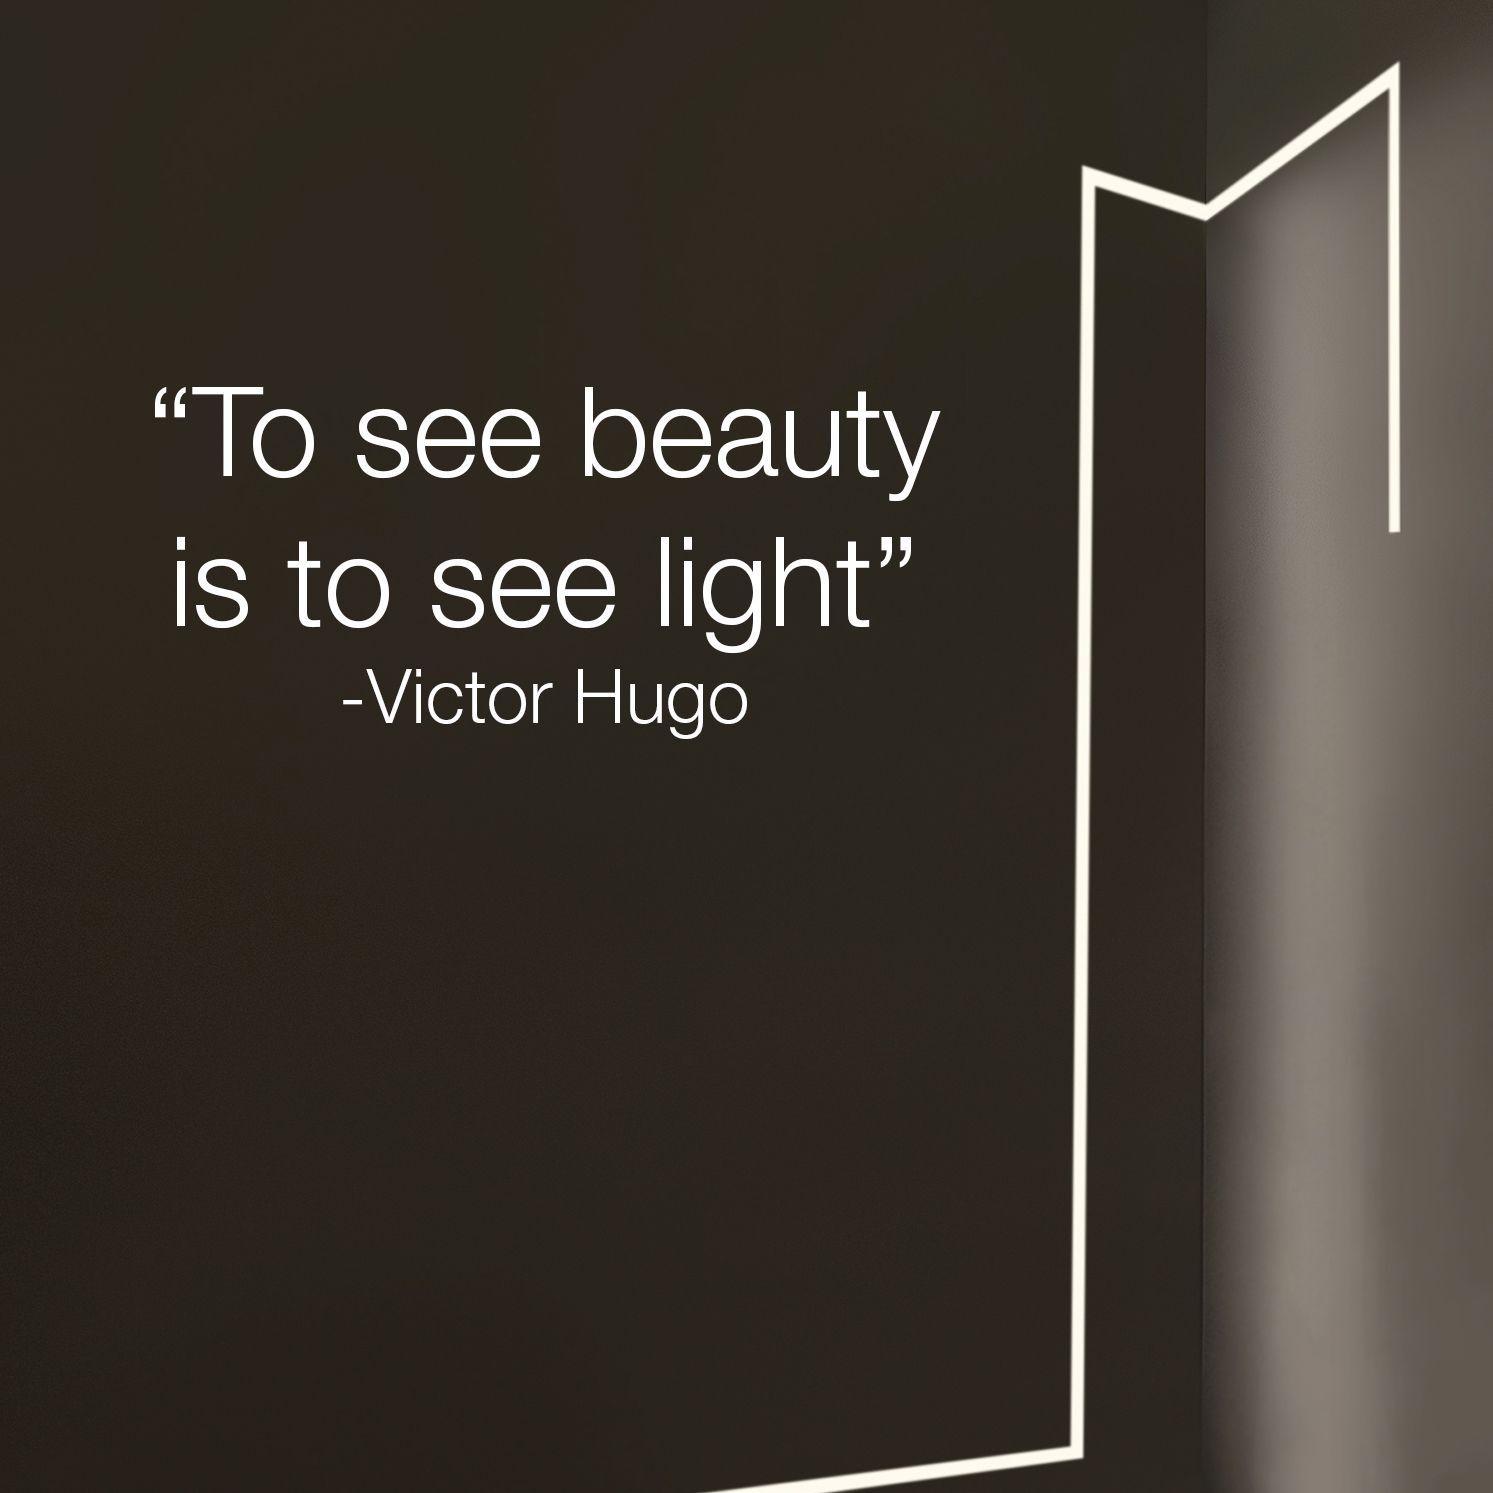 Modern Lighting Quotes To See Beauty Is To See Light